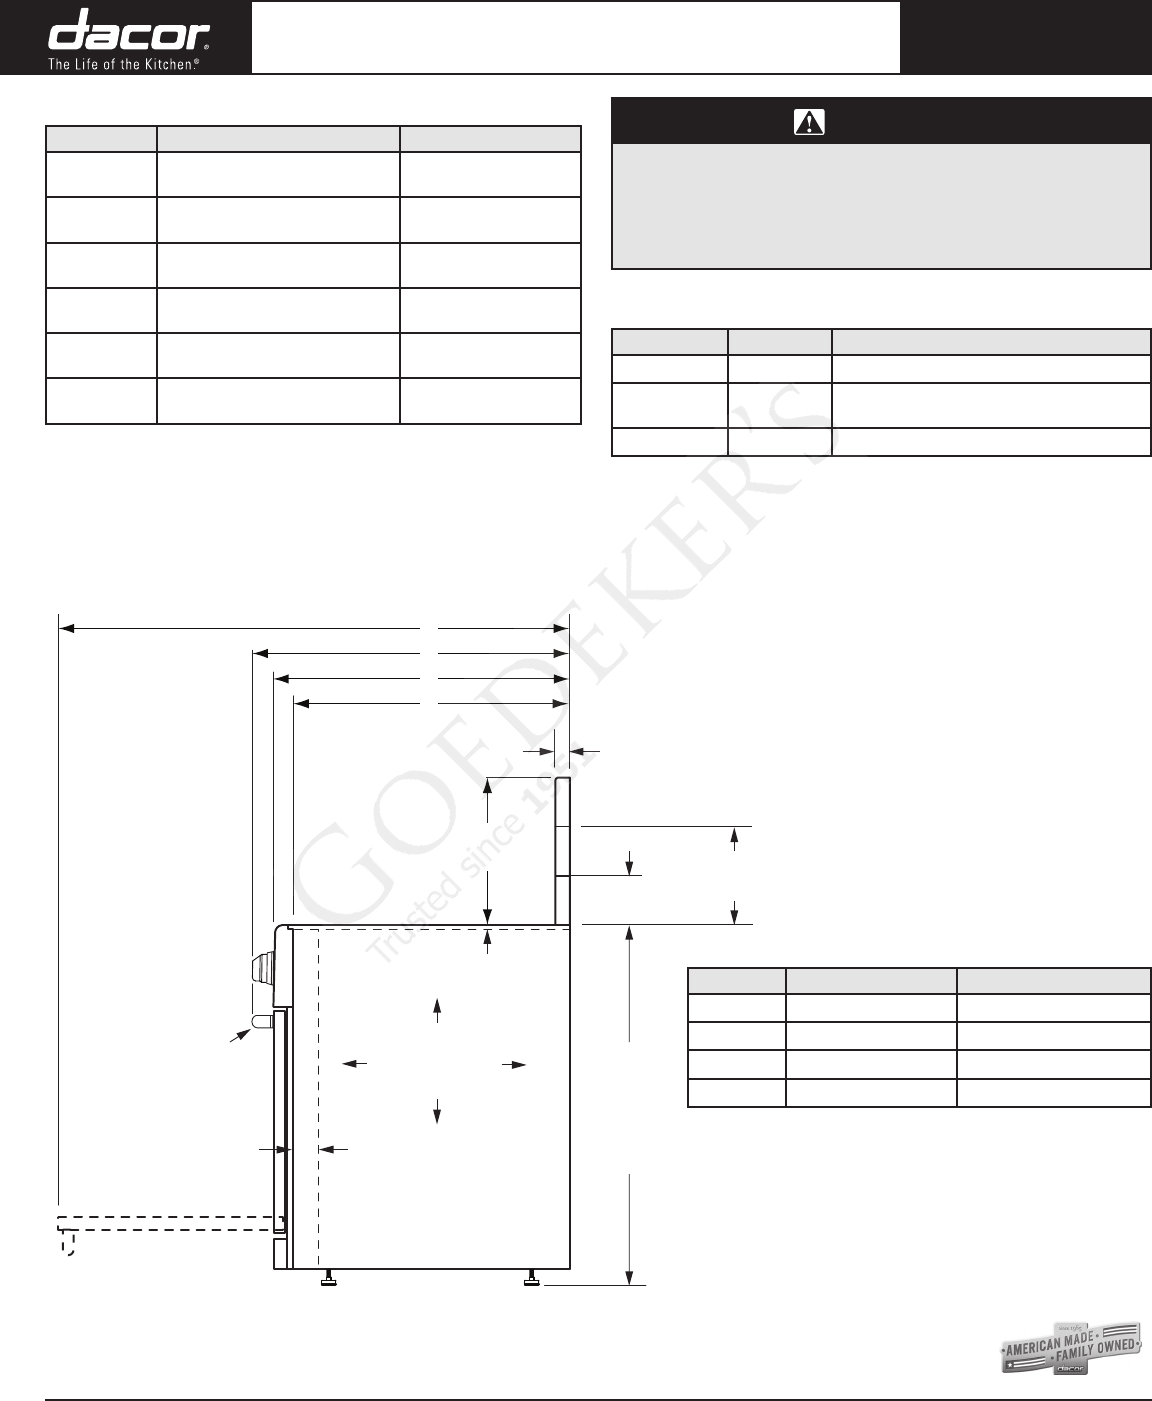 Dacor Range Dr30eifs User Guide Manualsonlinecom Wiring Diagram All Specications Subject To Change Without Notice